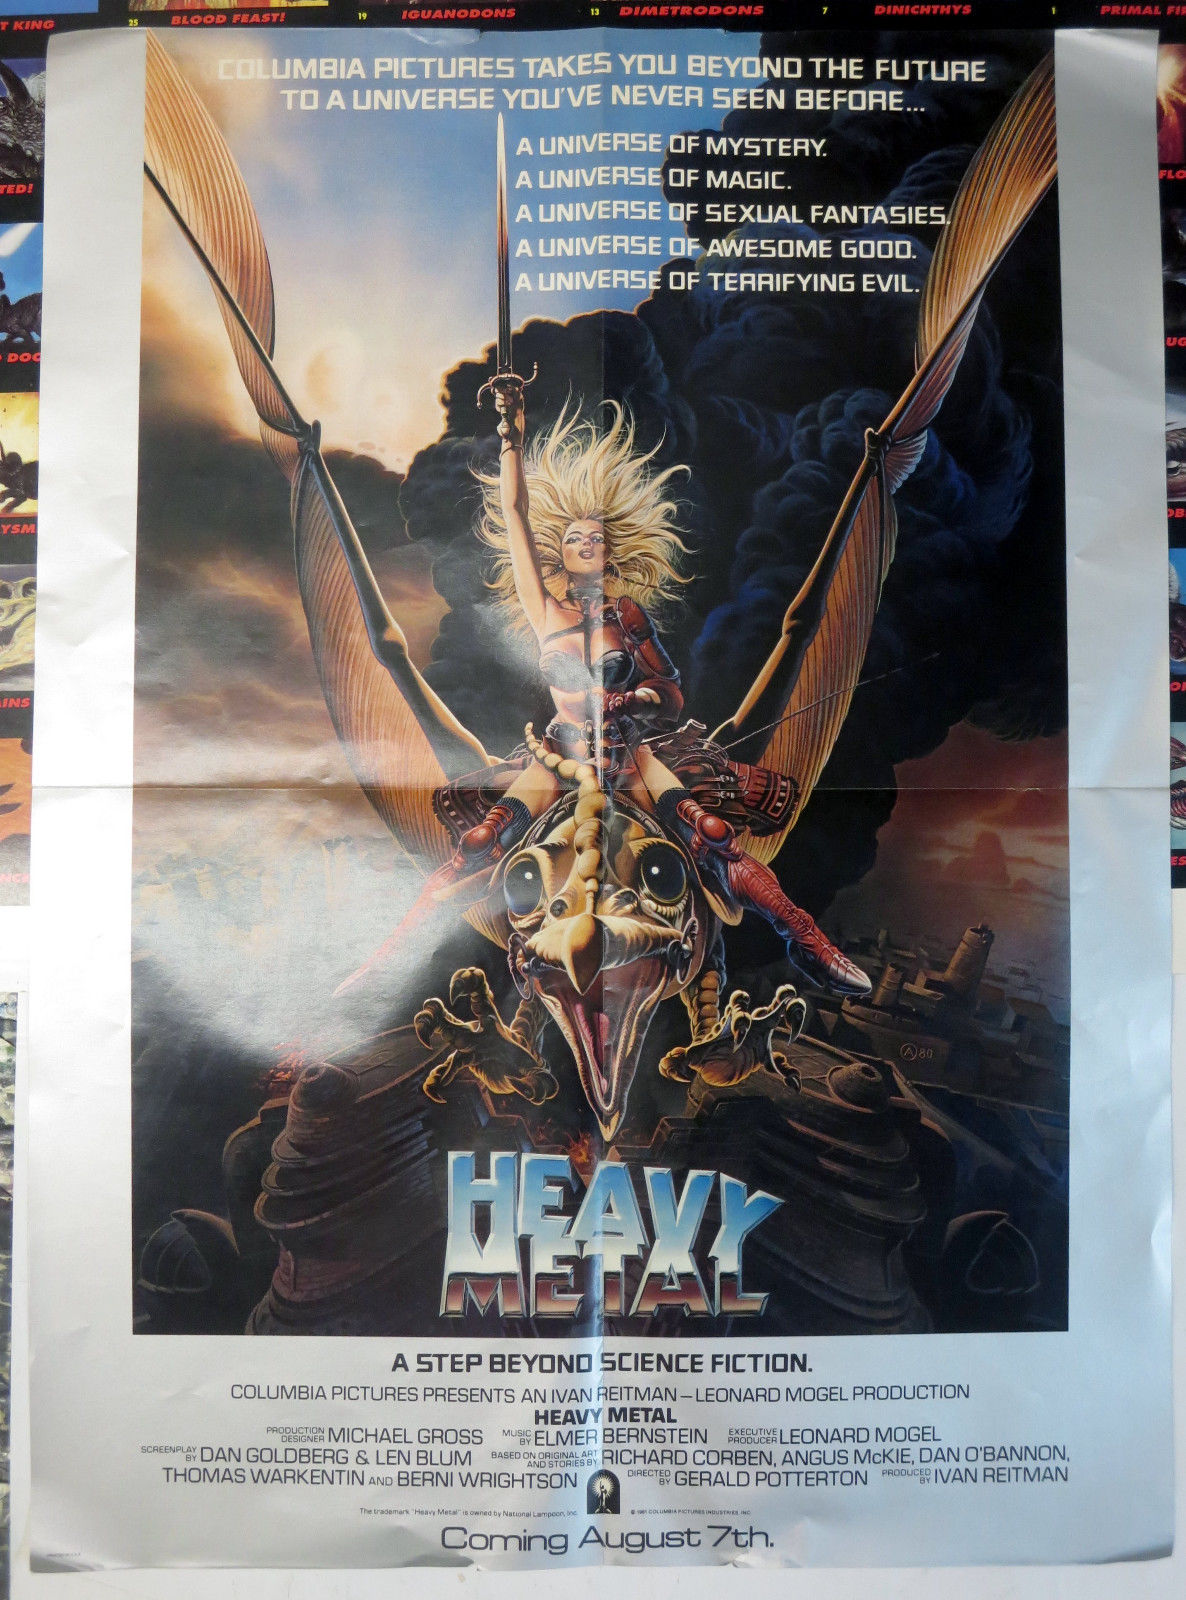 Heavy Metal 1981 Movie Promo Poster 24 X18 Chris Achilleos Taarna Dragon Space Hipcomic